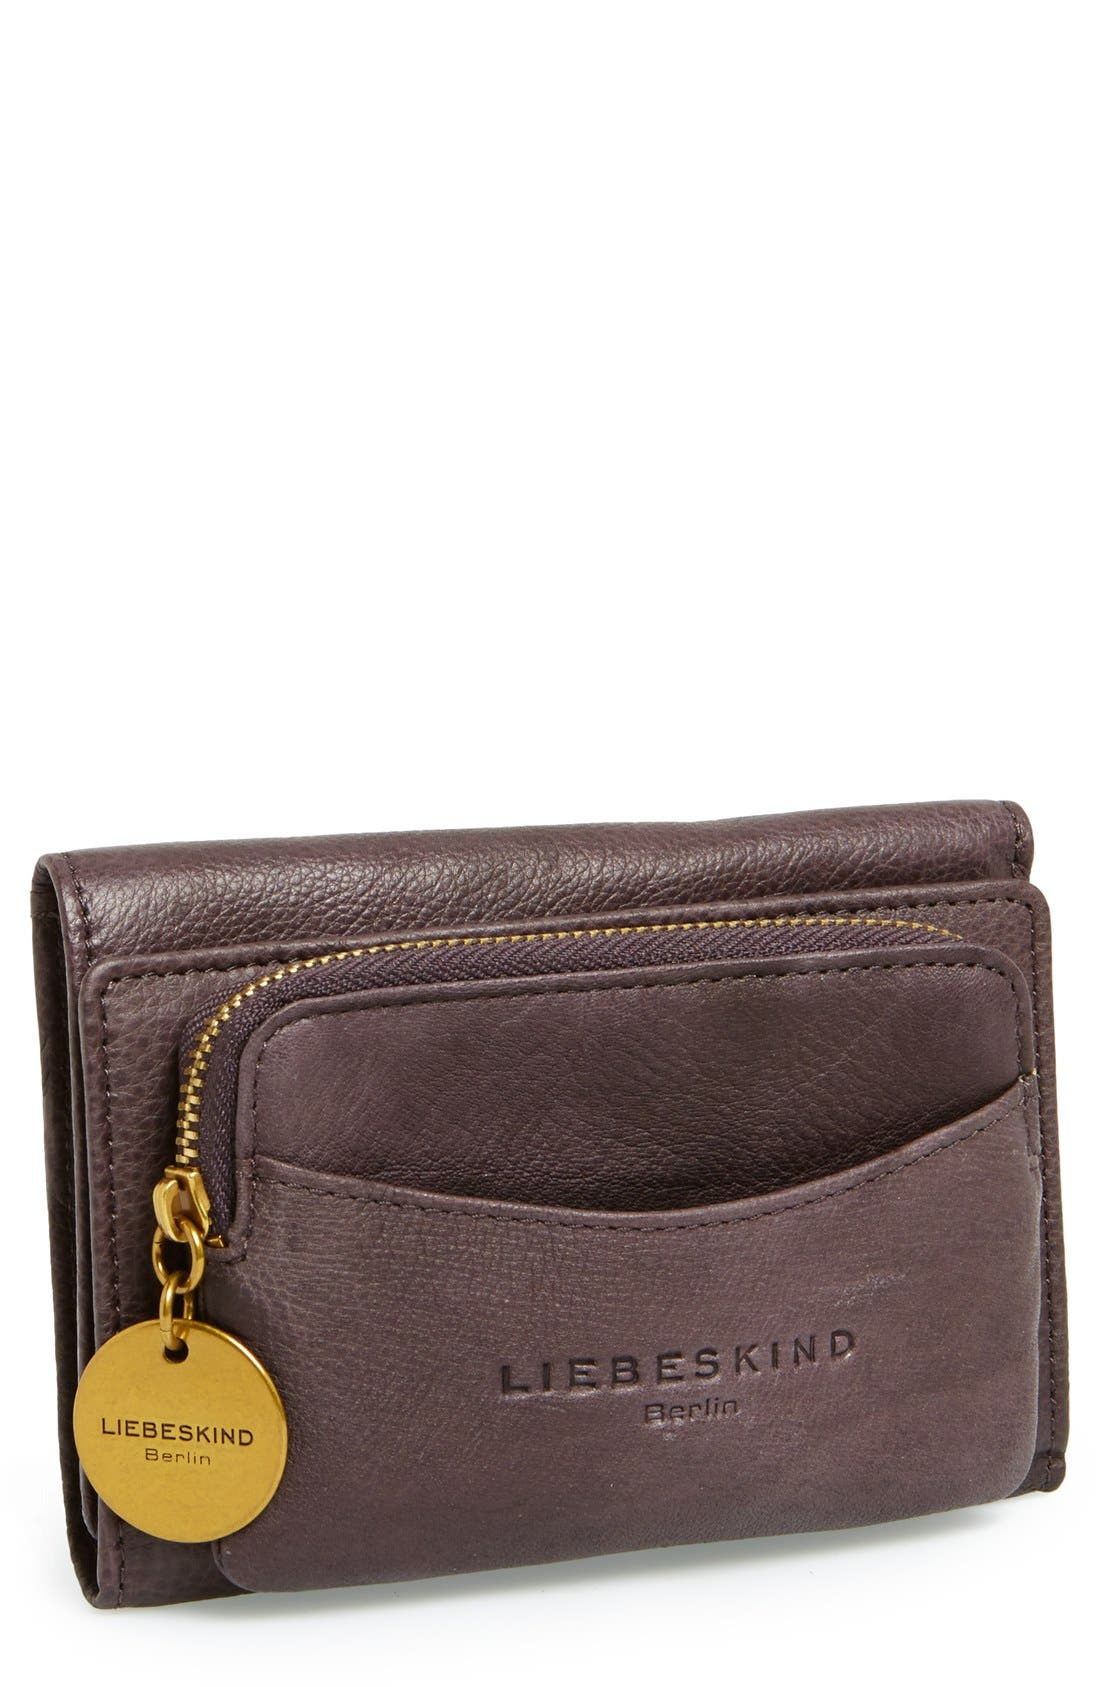 Liebeskind small alexandra leather wallet nordstrom jpg 1660x2546 Liebeskind  brown alex wallet womens dc53728890787